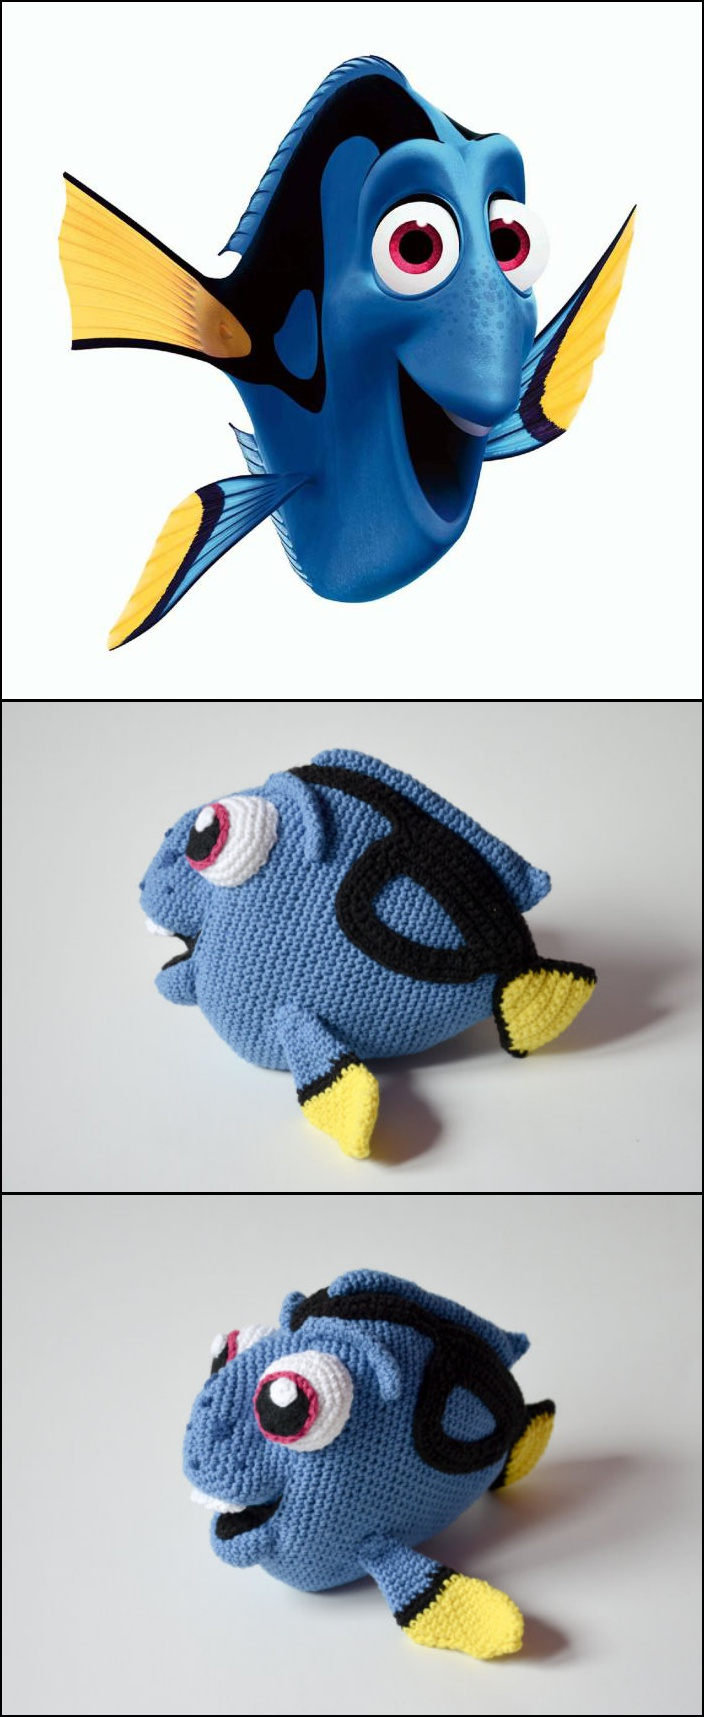 10-finding-dory-crochet-patterns2